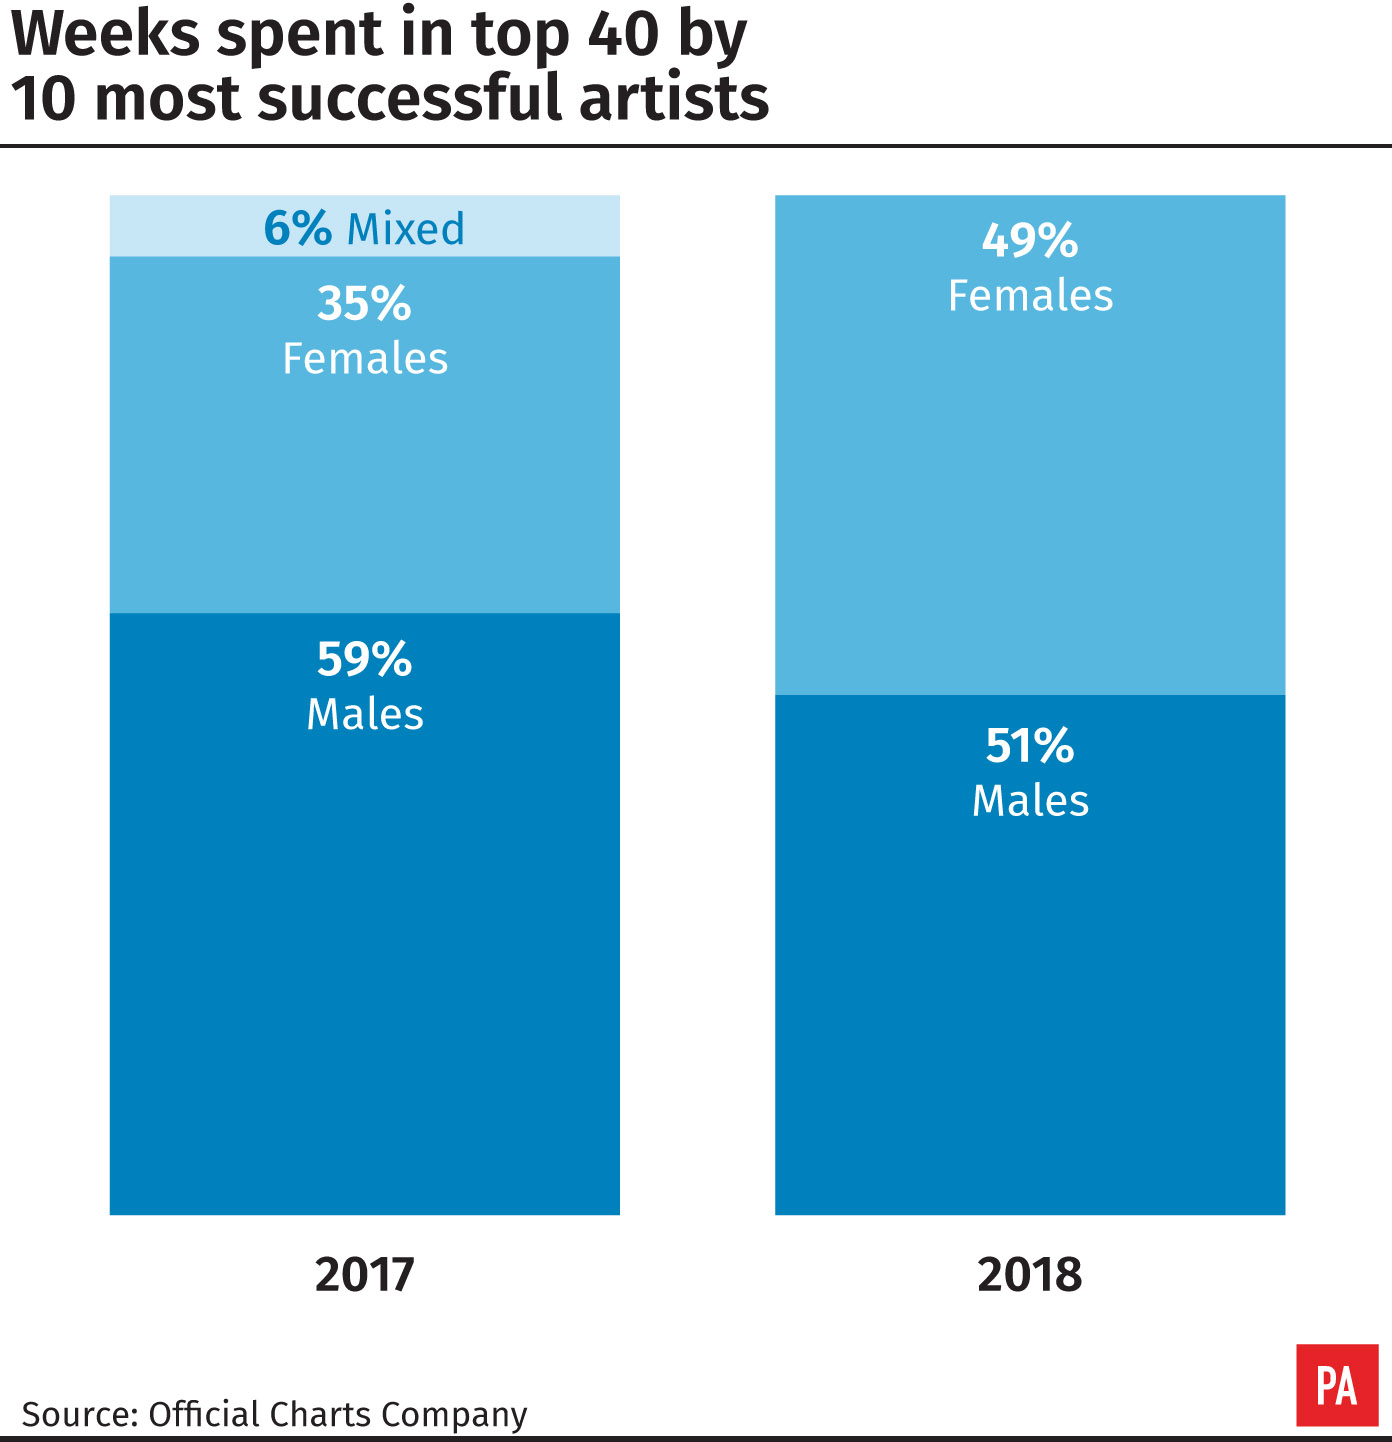 Female artists shrink gender gap among biggest top 40 acts